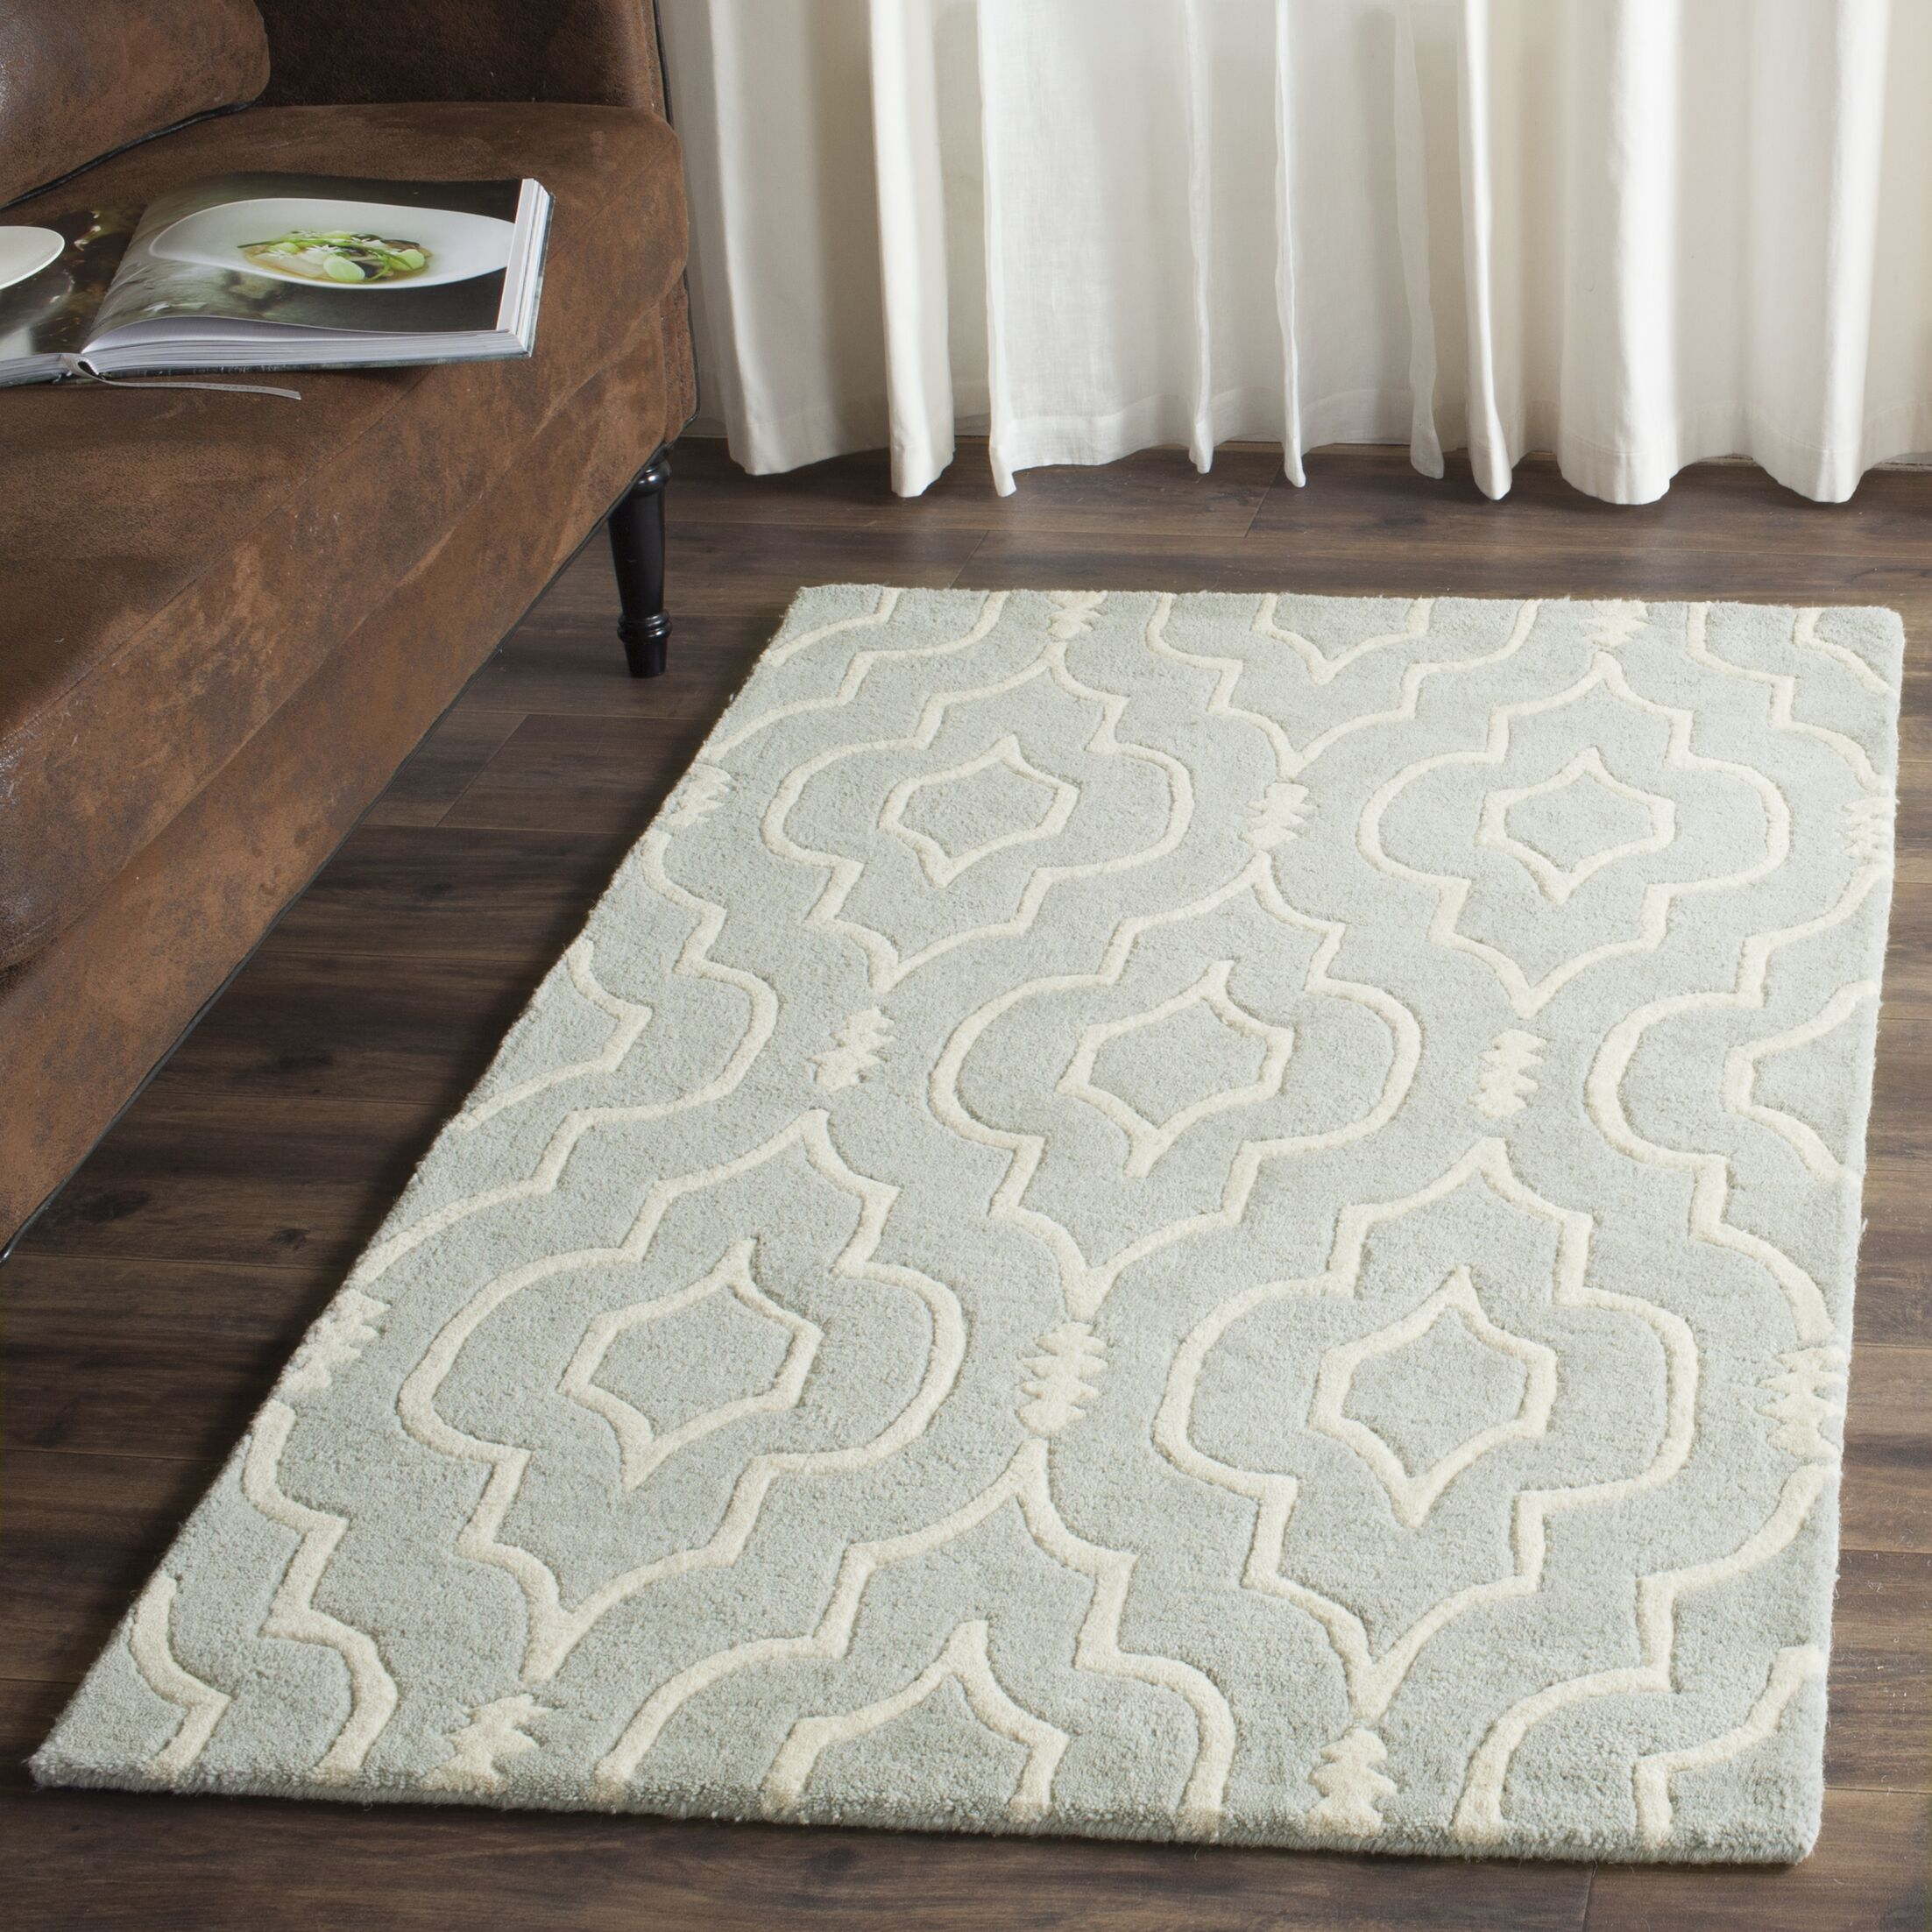 Wilkin Hand-Tufted Gray/Ivory Area Rug Rug Size: Rectangle 8'9